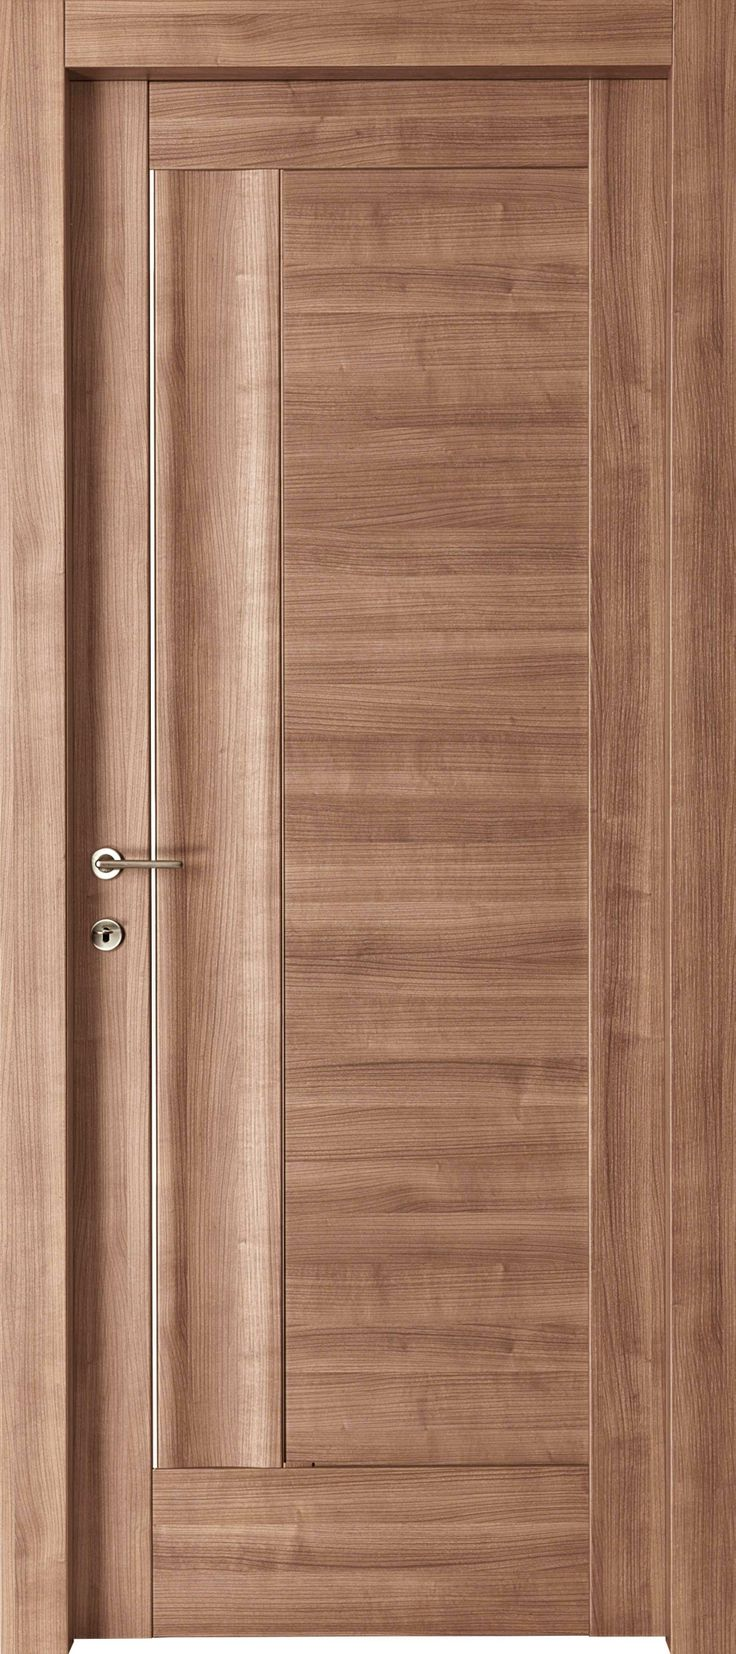 wooden door design. Puerta de madera. Stratum Floors. www.stratum-floors.com.mx